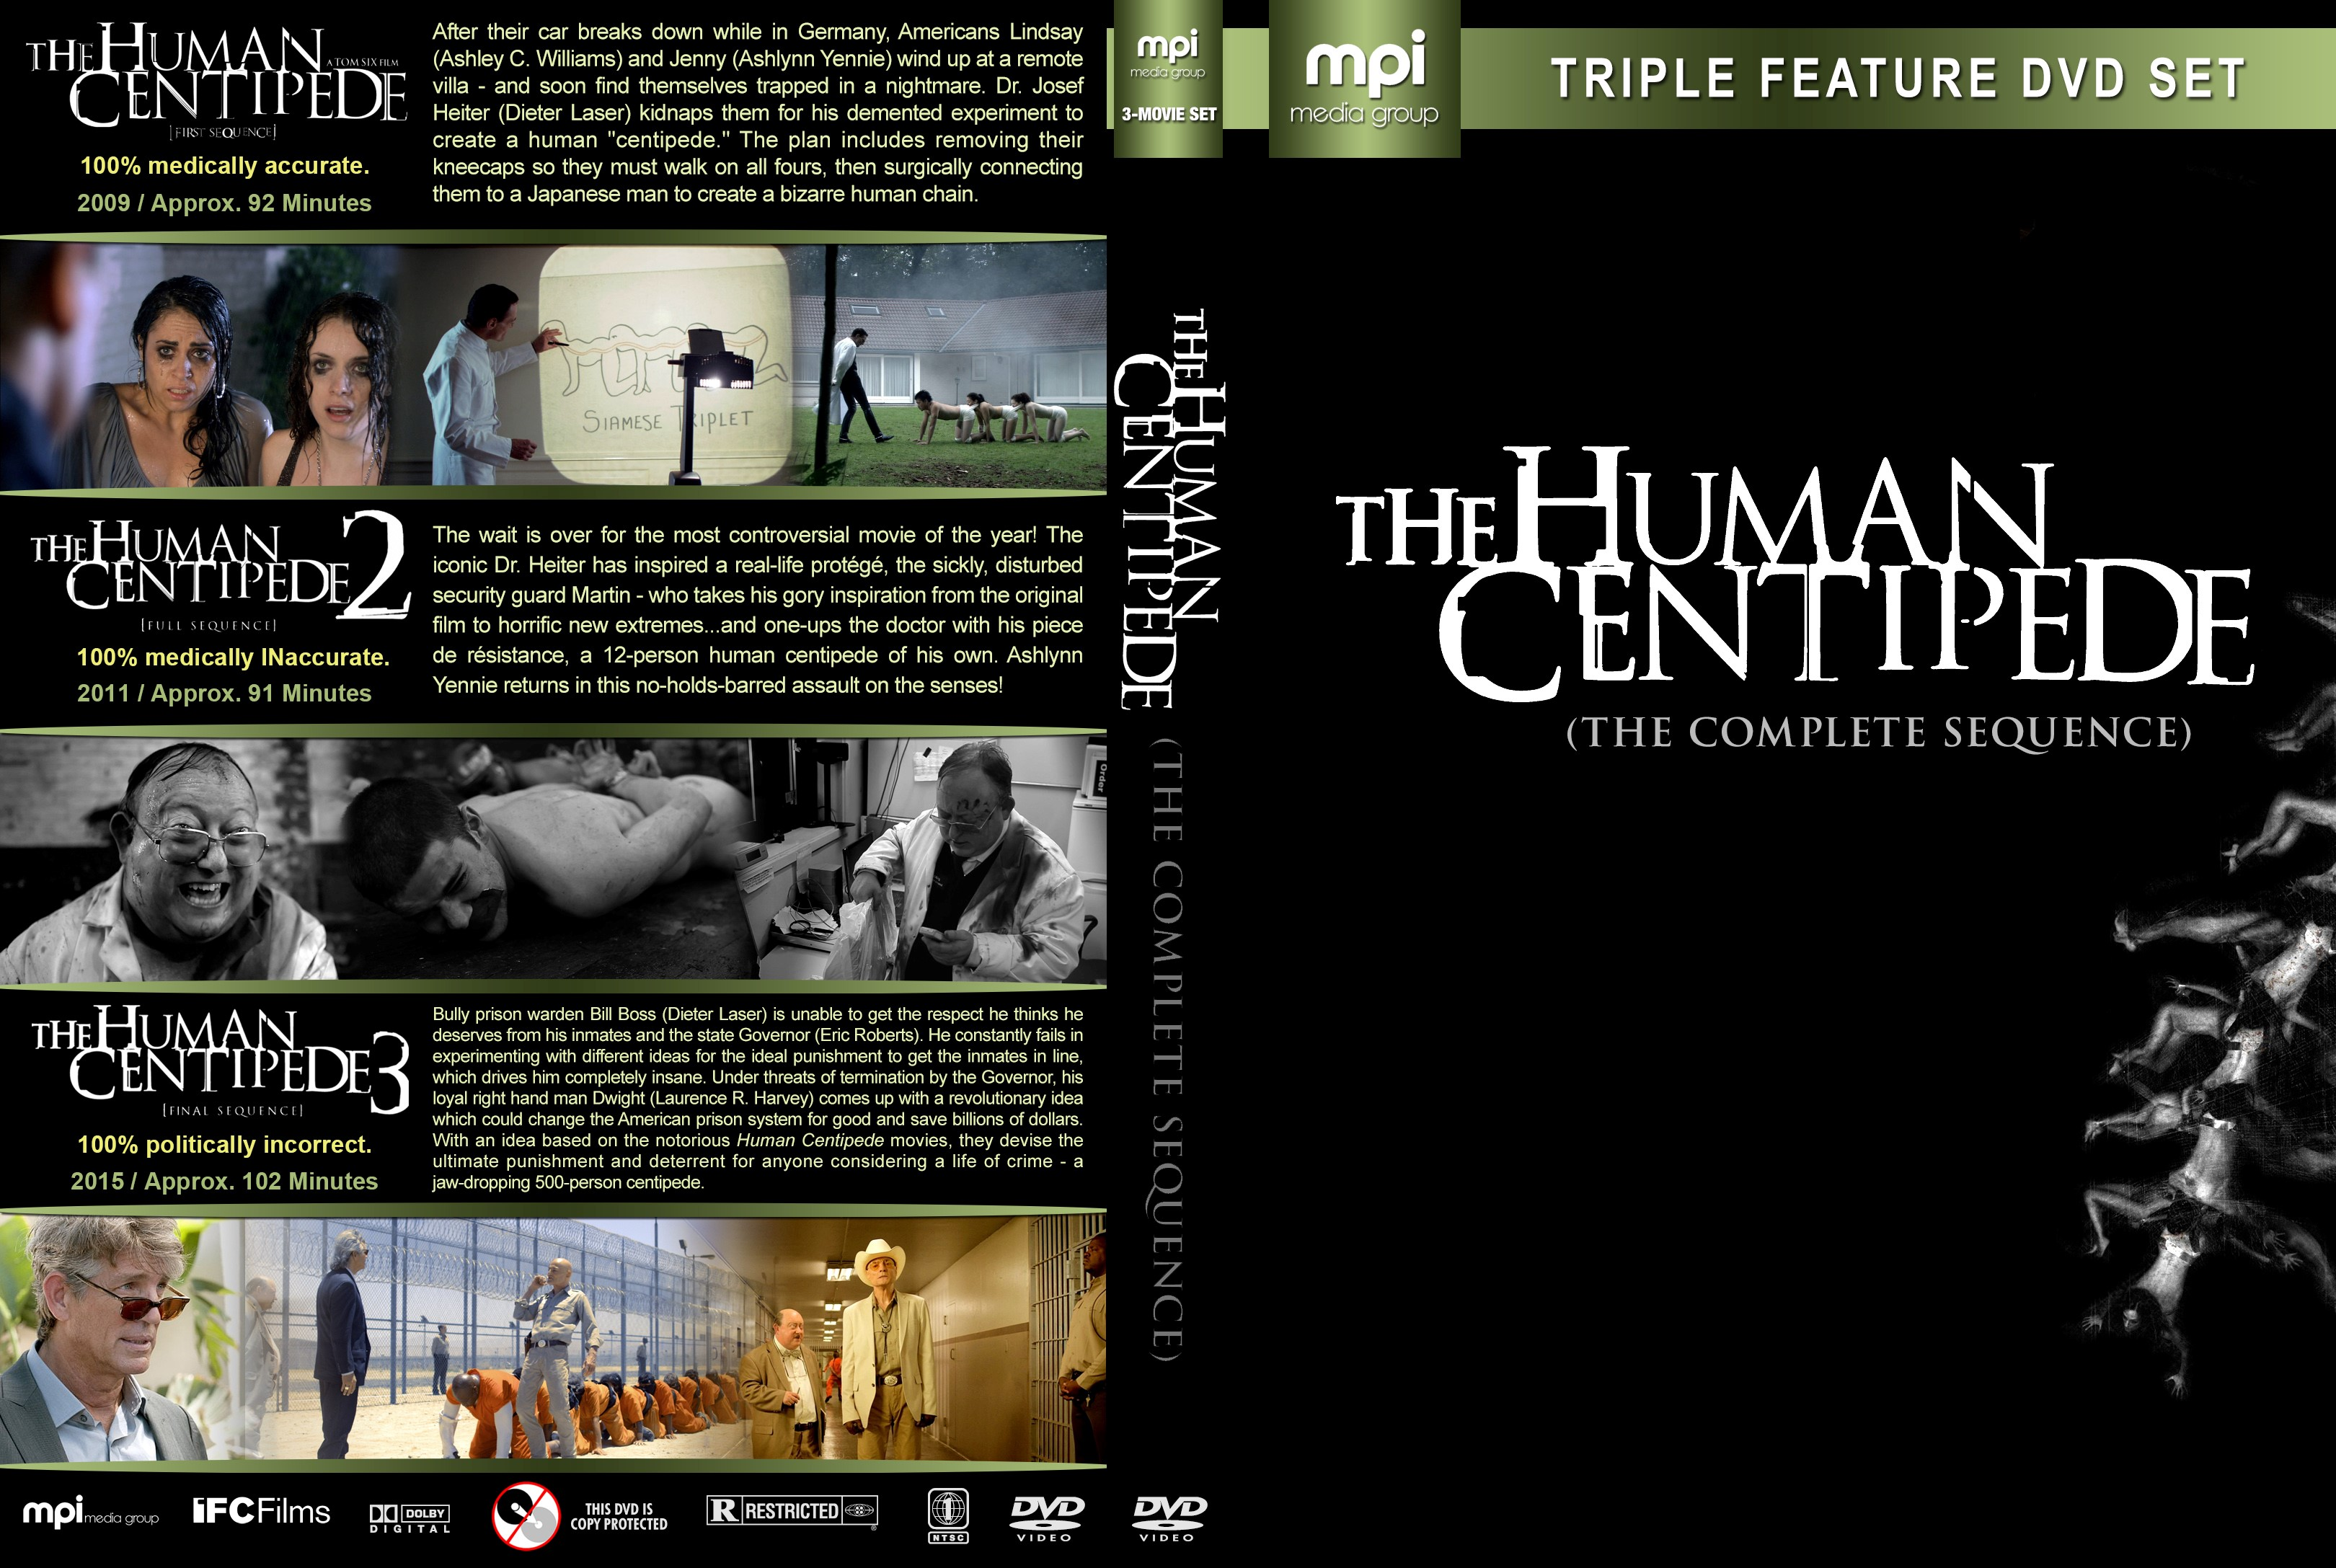 the human centipede full movie download free